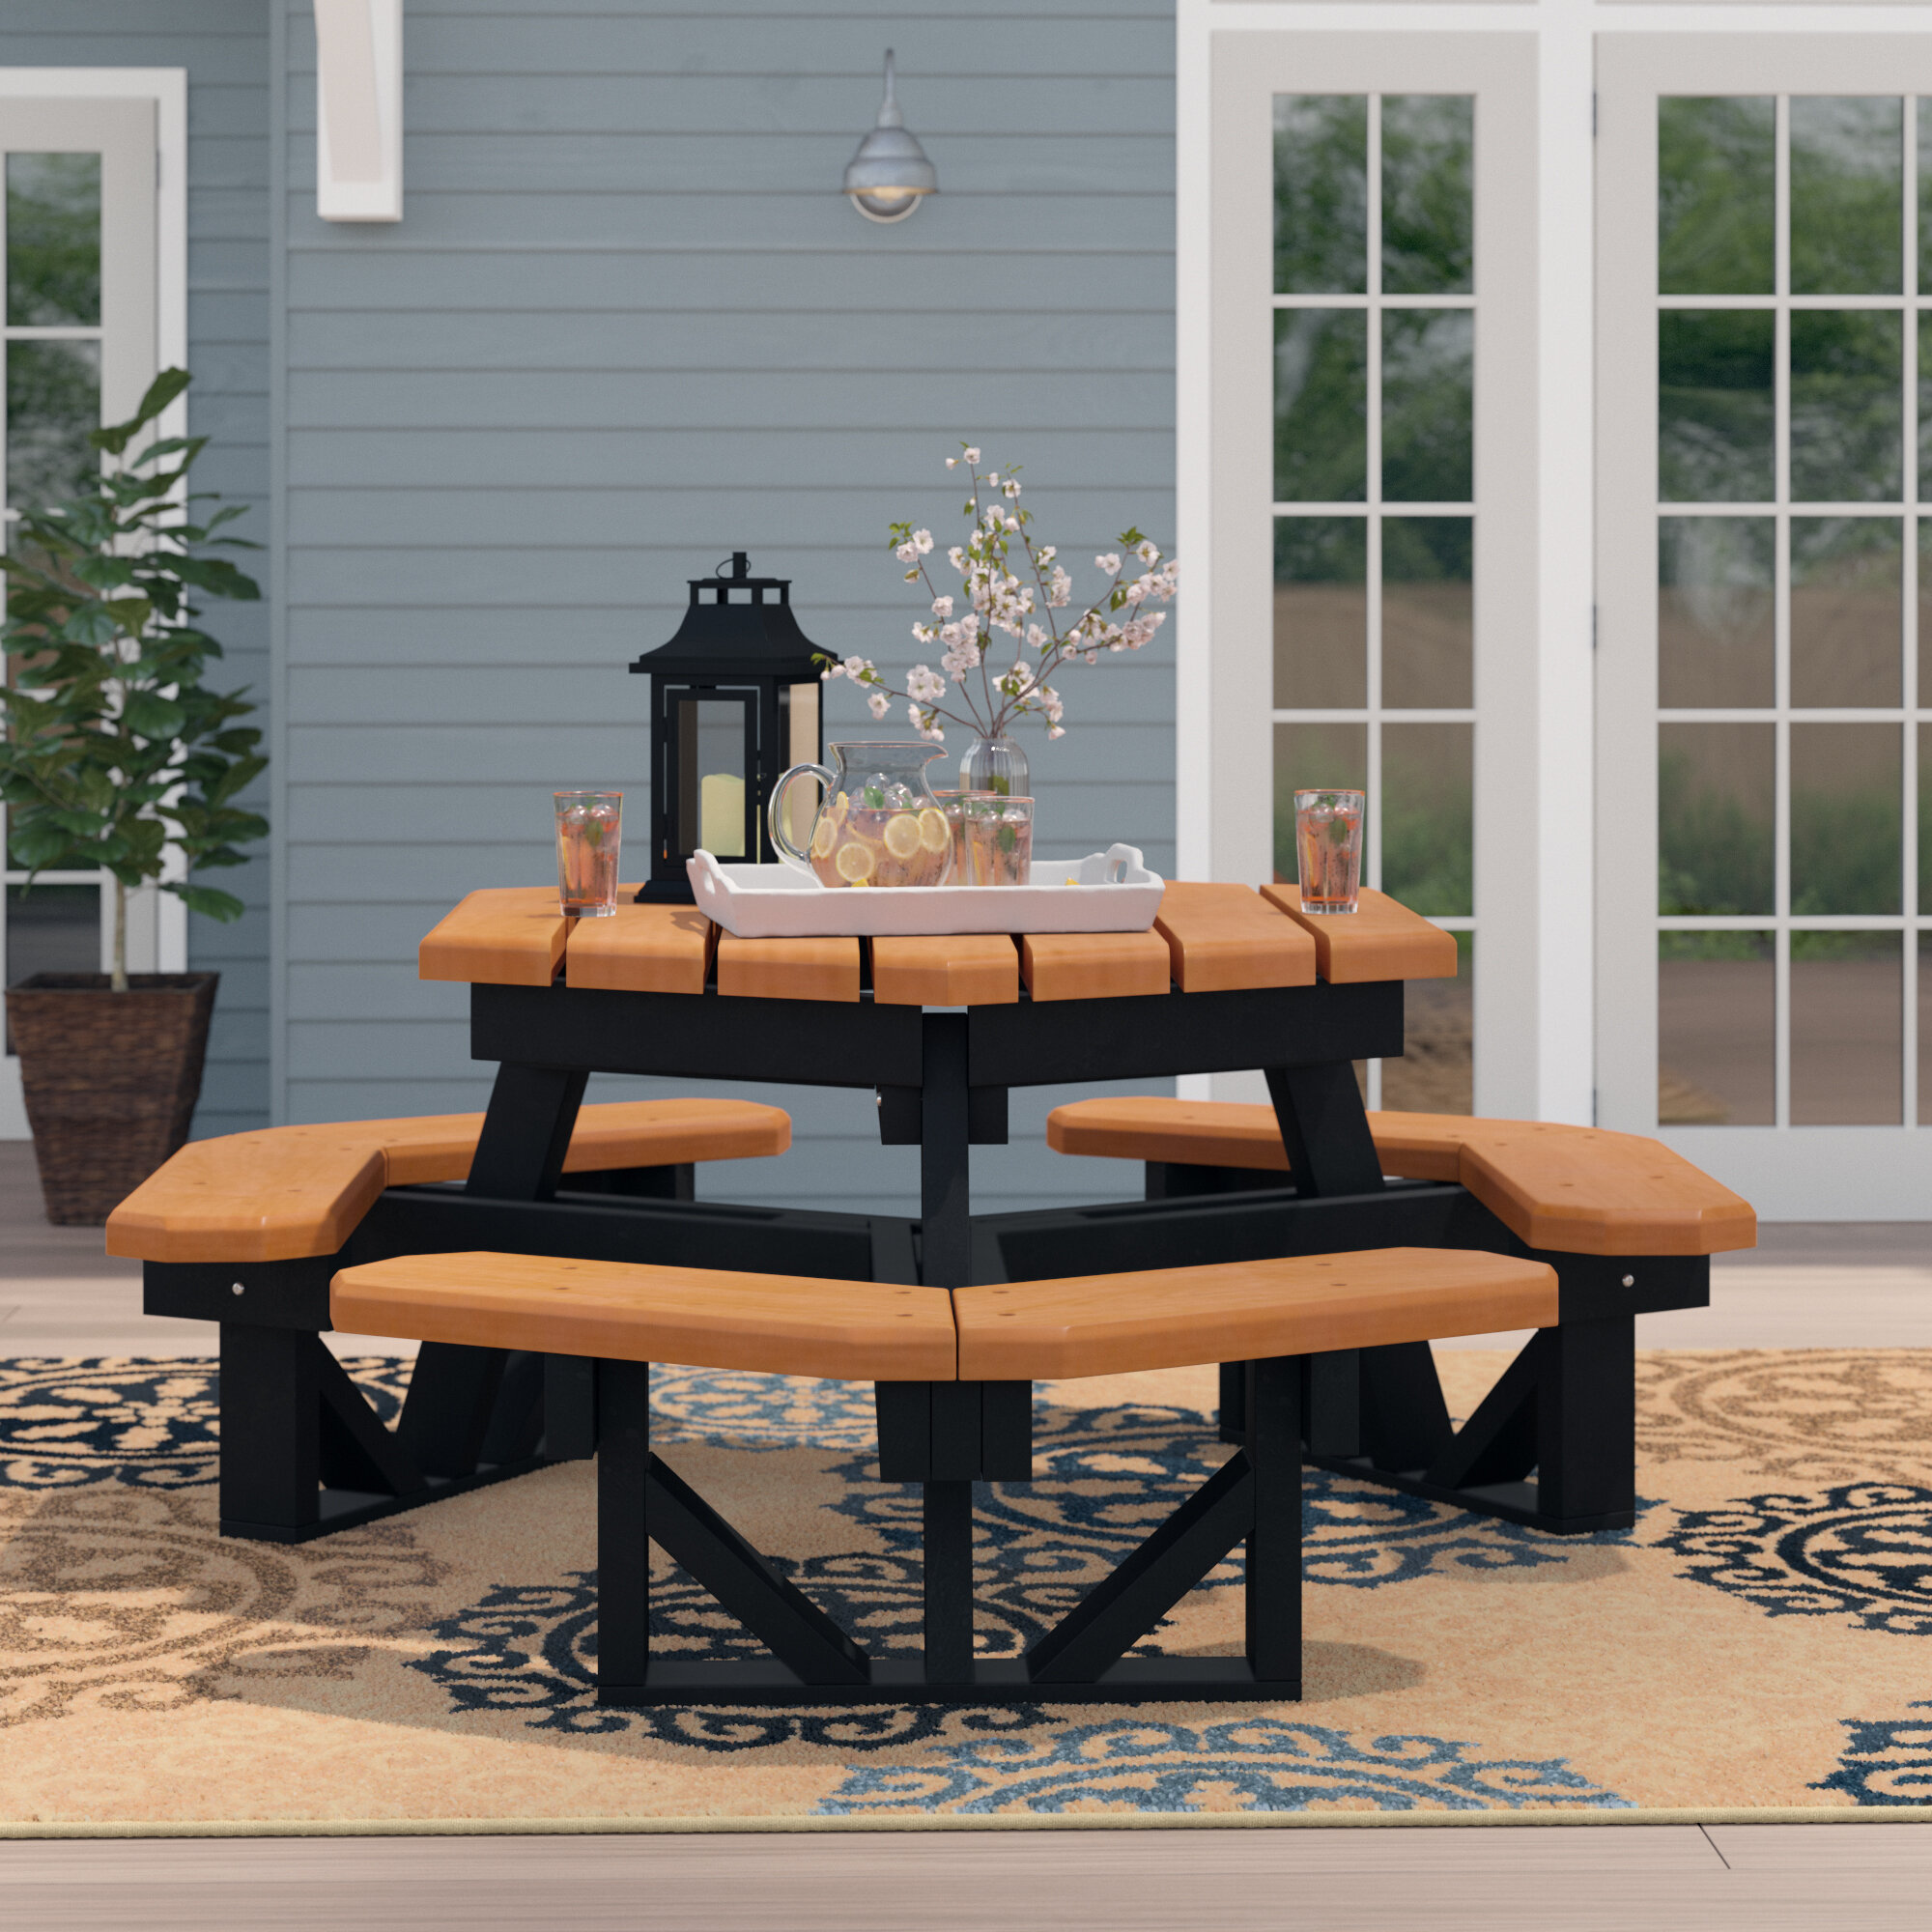 Wondrous Fansler Plastic Picnic Table Interior Design Ideas Gentotthenellocom